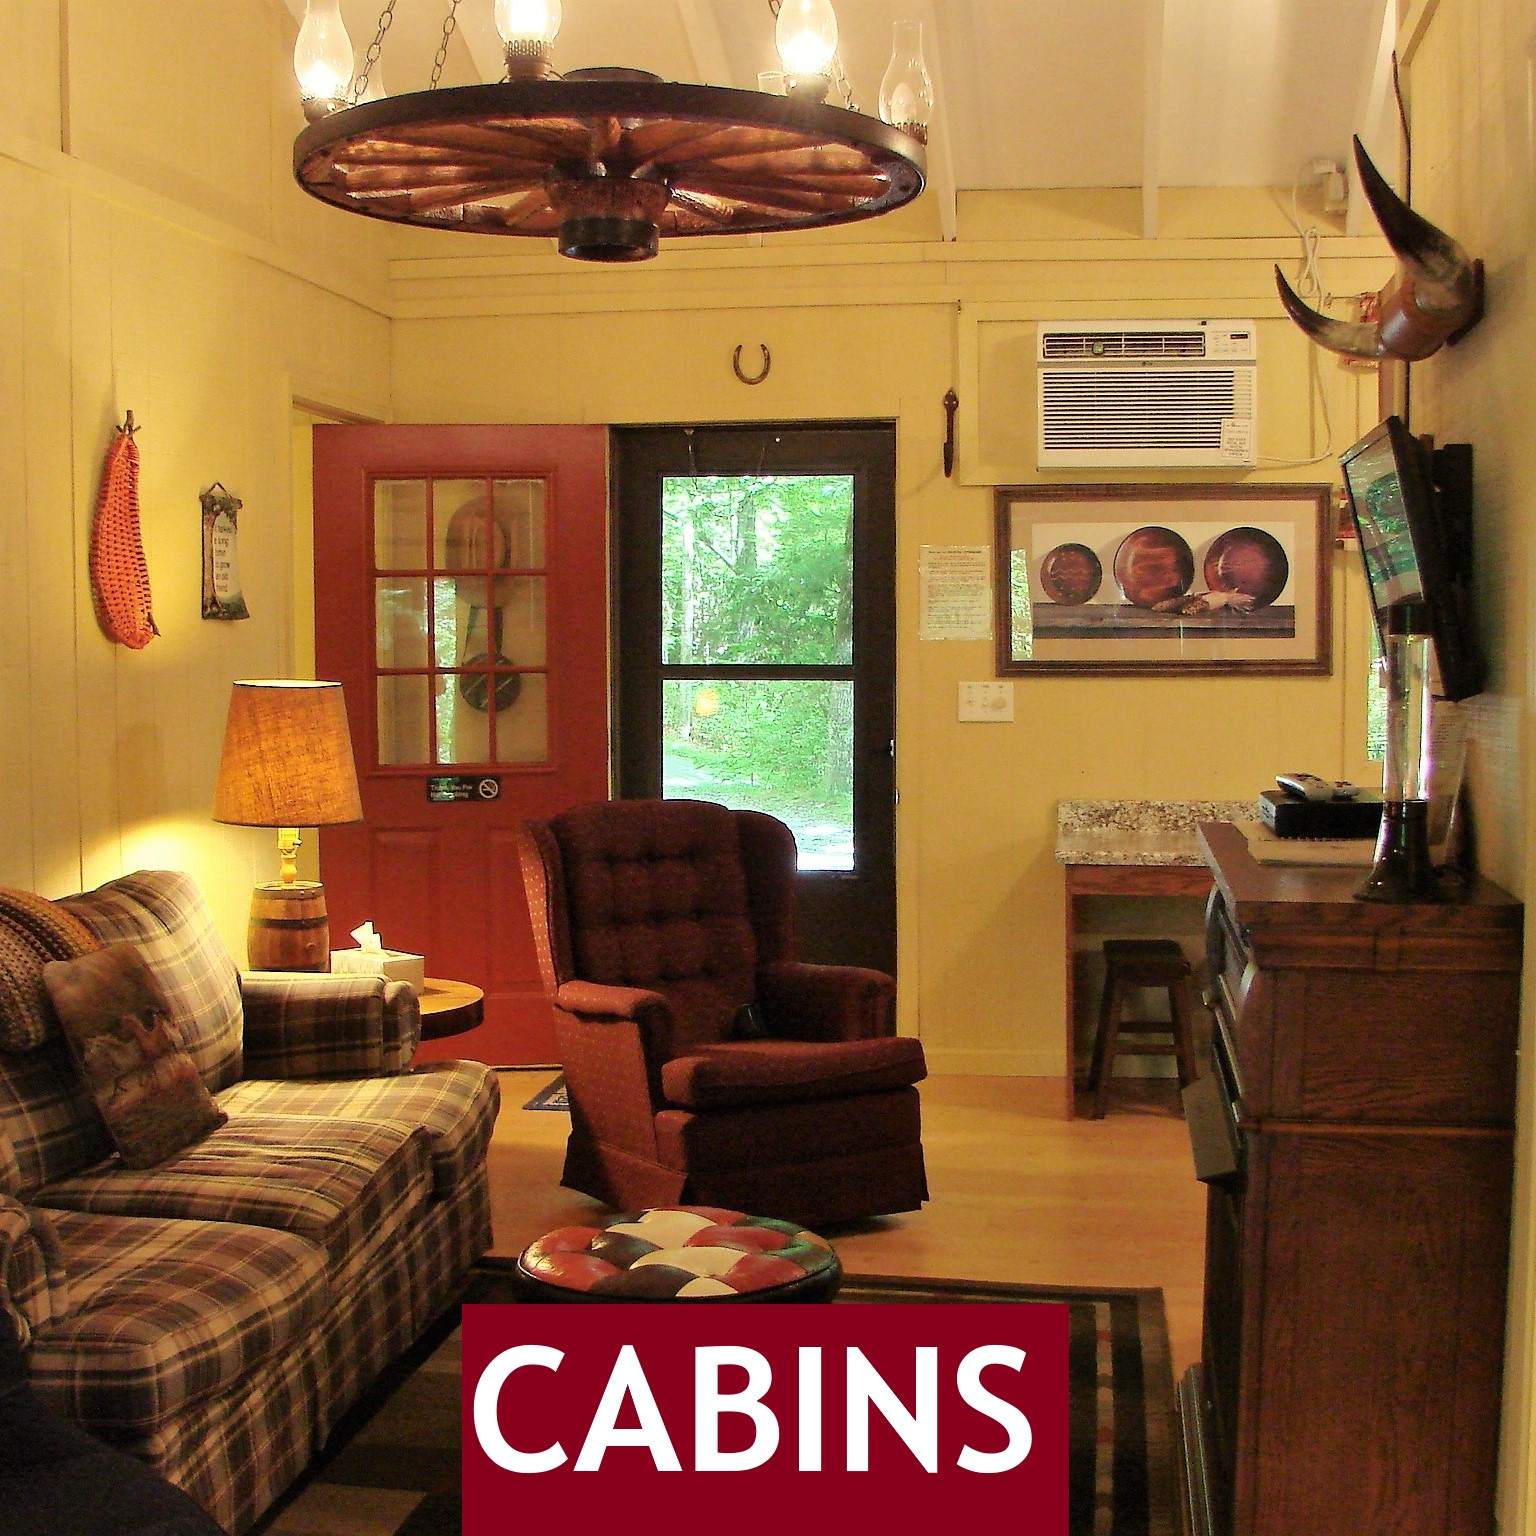 cabins | camping | brevard nc | dupont forest | pisgah forest | land